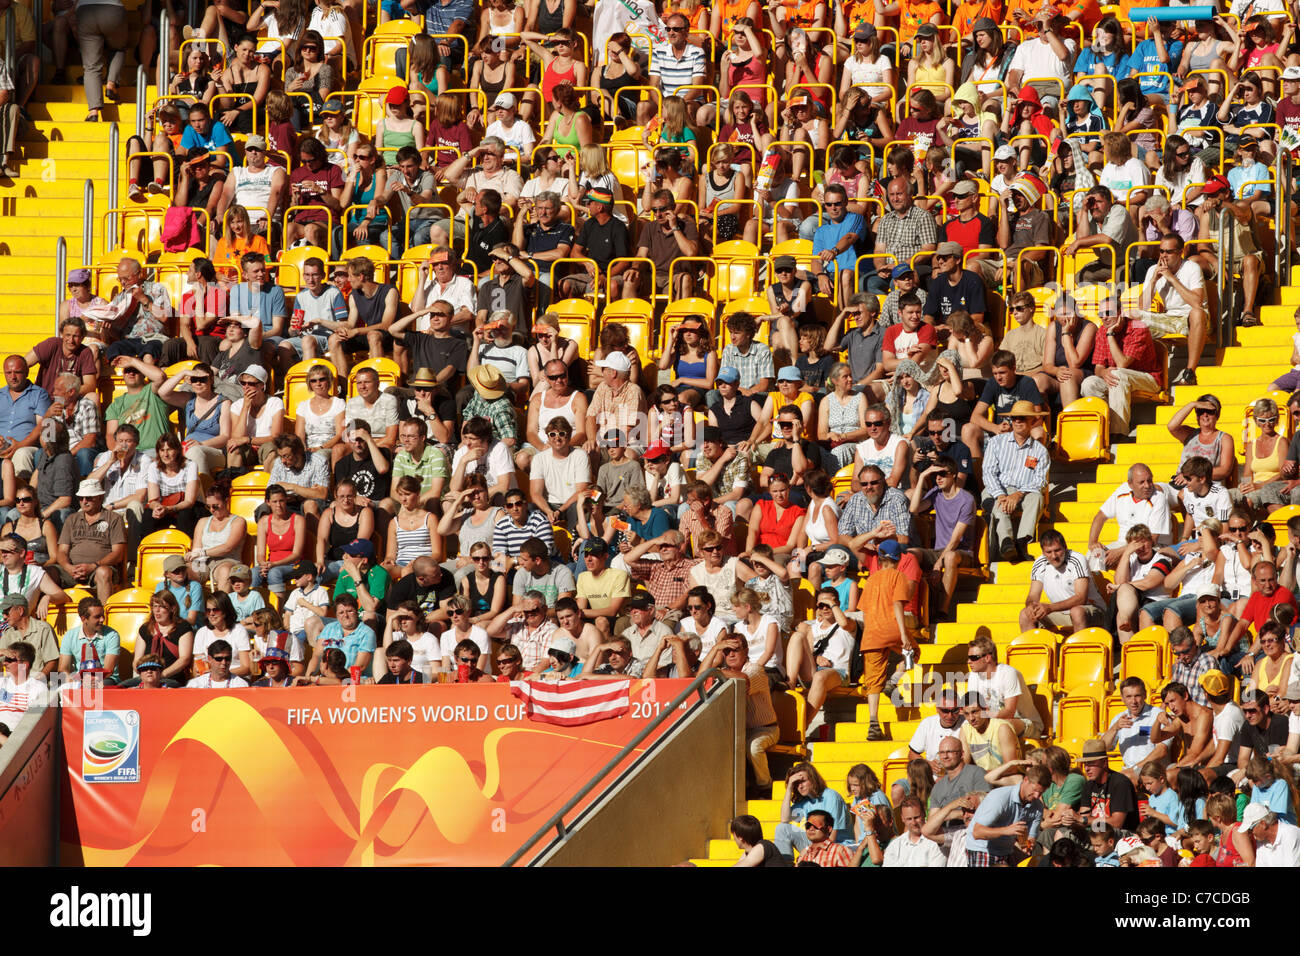 Spectators watch a 2011 Women's World Cup Group C match between the United States and North Korea in Dresden, - Stock Image